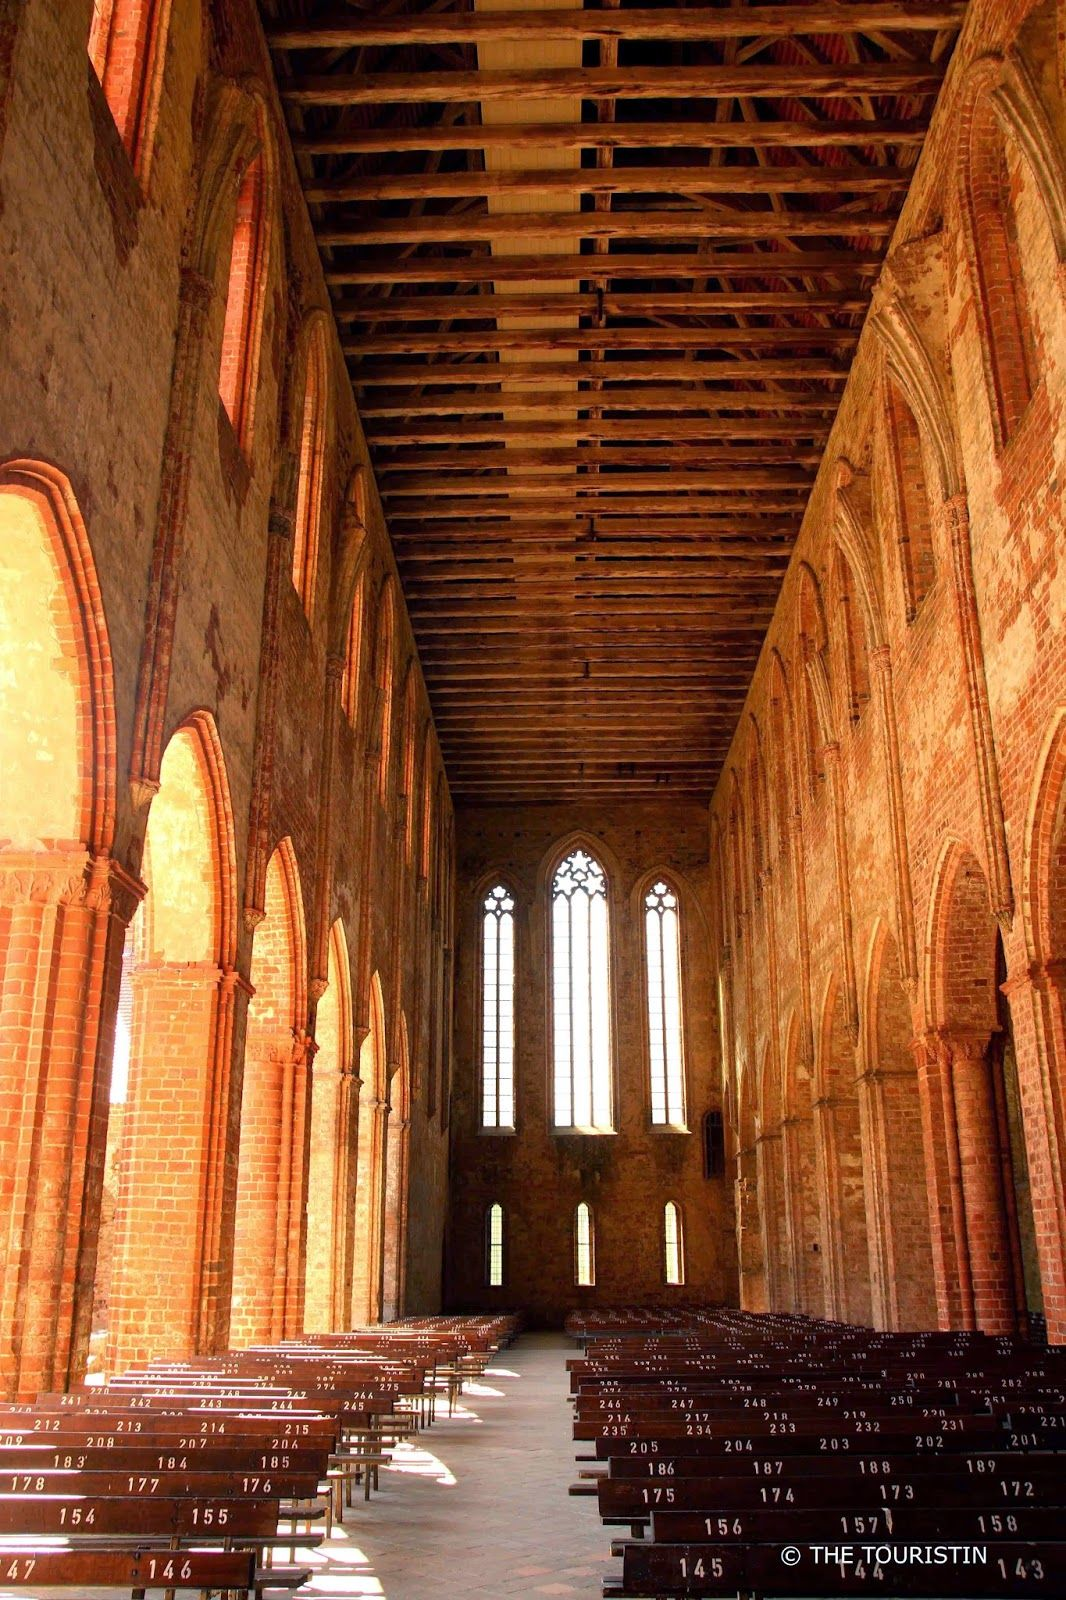 Church At Chorin Abbey In Brandenburg Germany With The Touristin